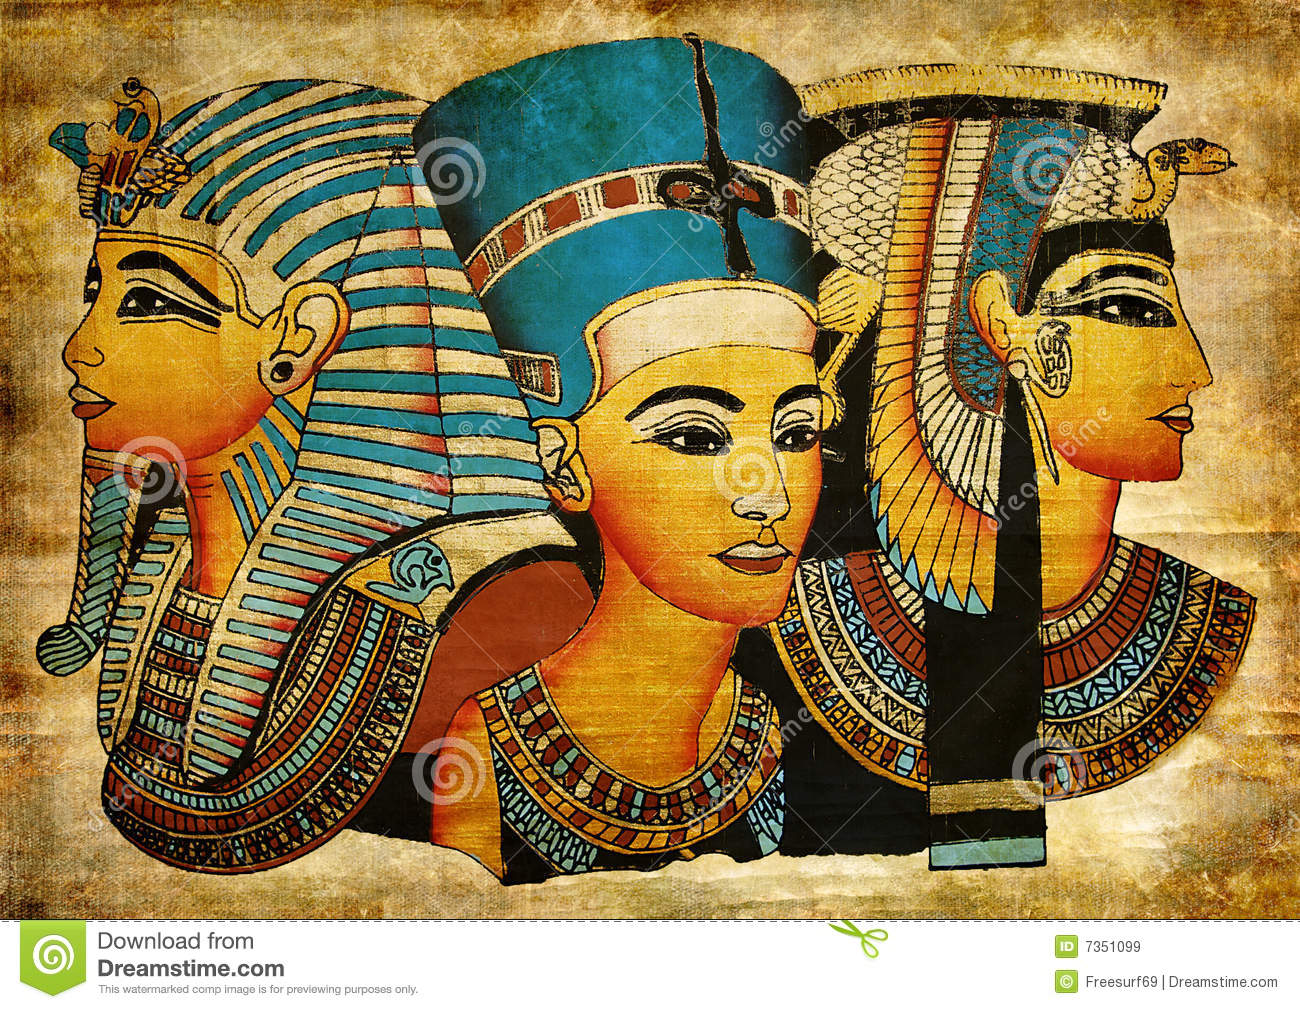 Egyptian Backgrounds on Wallpapers Vista